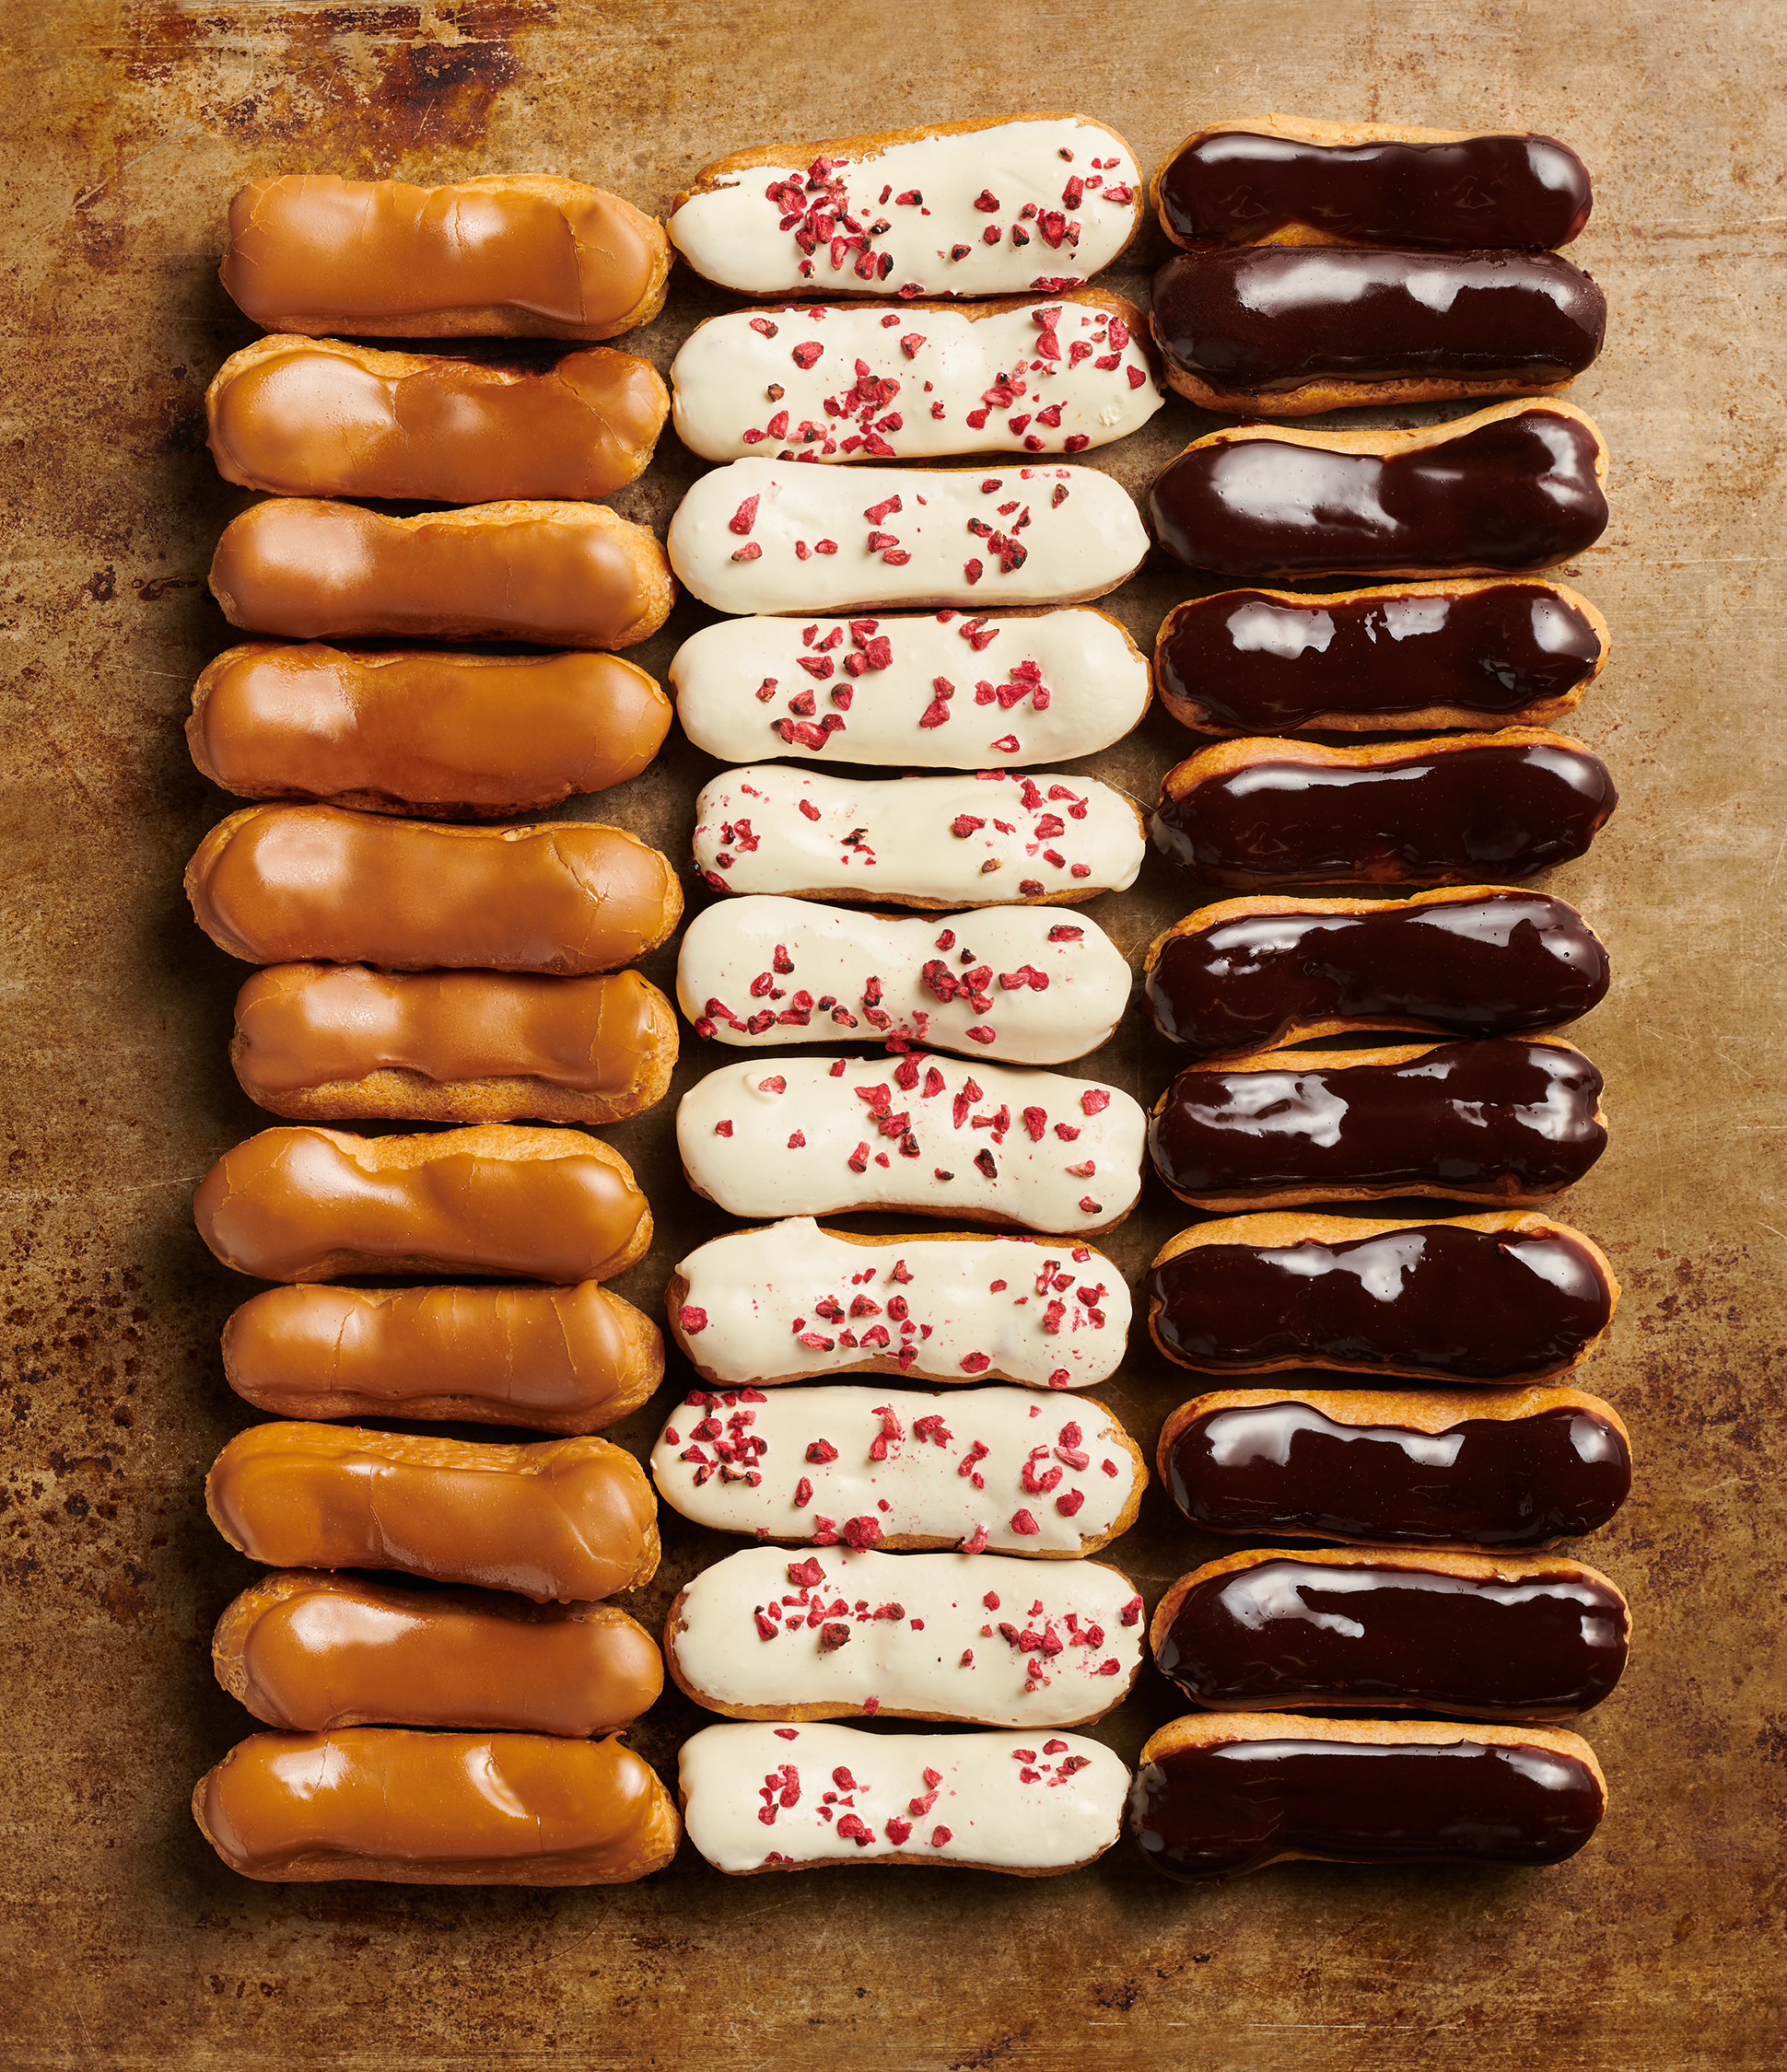 advertising photography of eclairs and patisserie